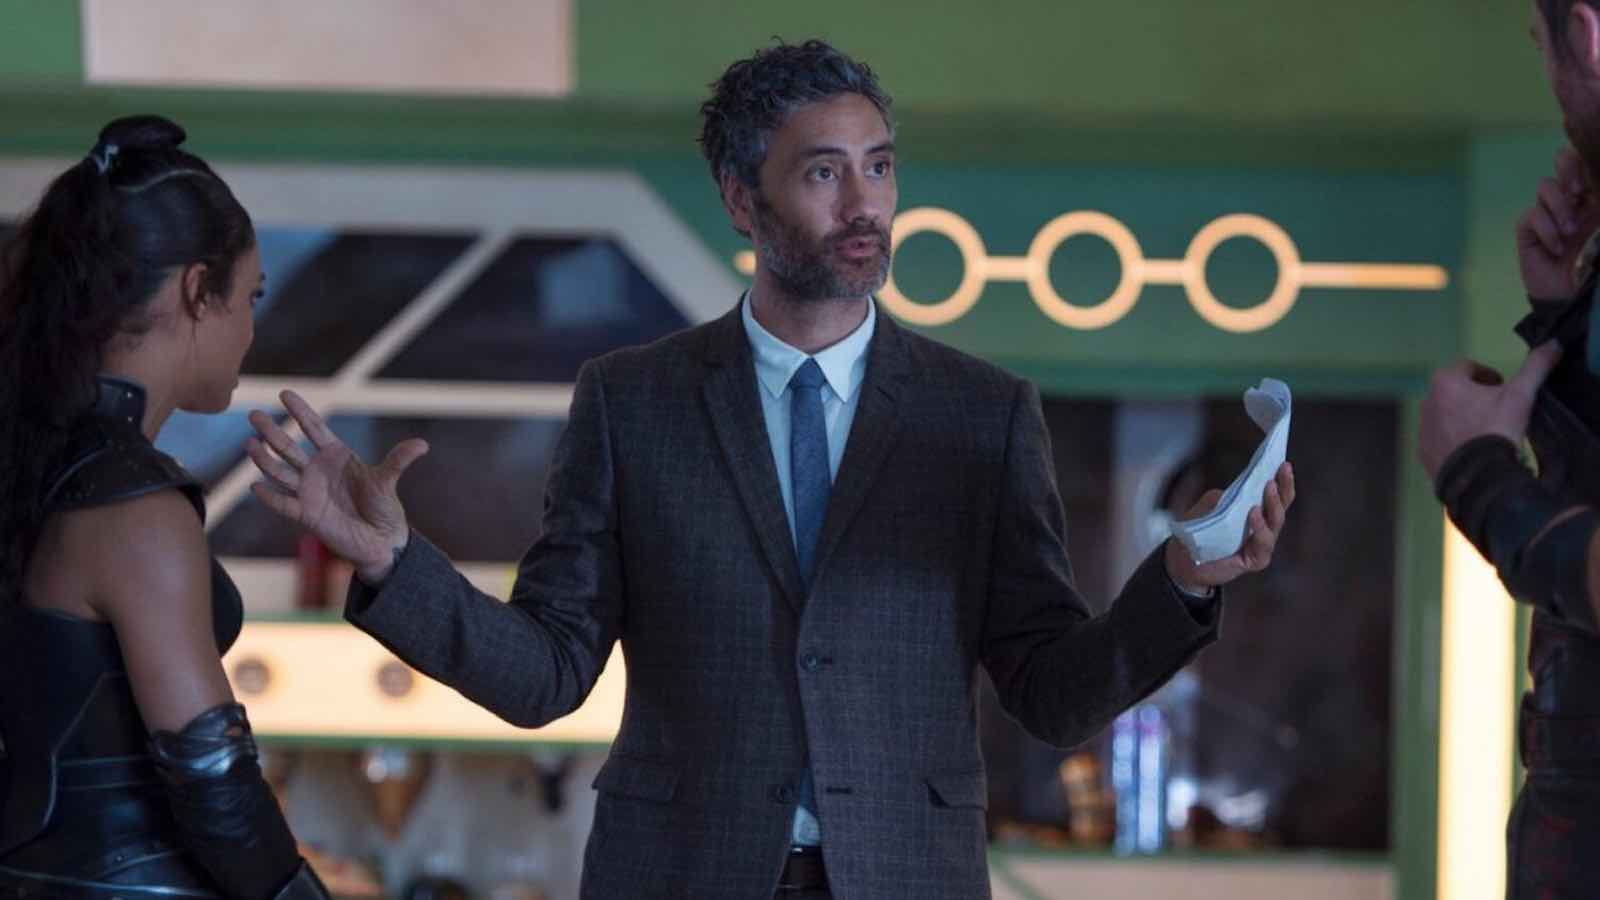 Taika Waititi is helping create more FX shows after the success of 'What We Do in the Shadows'. Find out about his new project 'Reservation Dogs'.